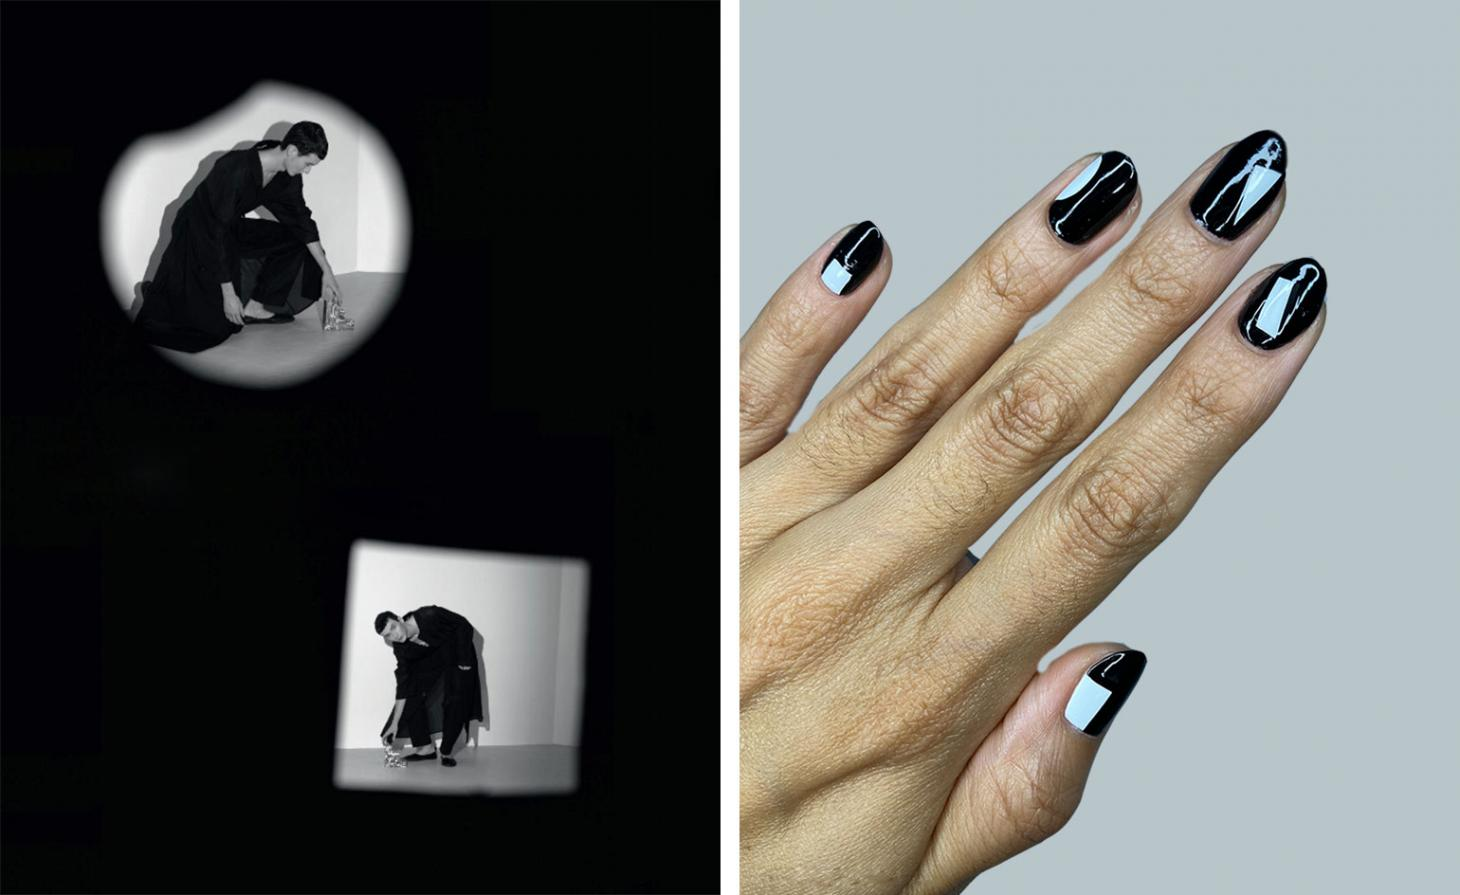 two images of a boy picking up bookends in a black background, black nails painted with white geometric shapes